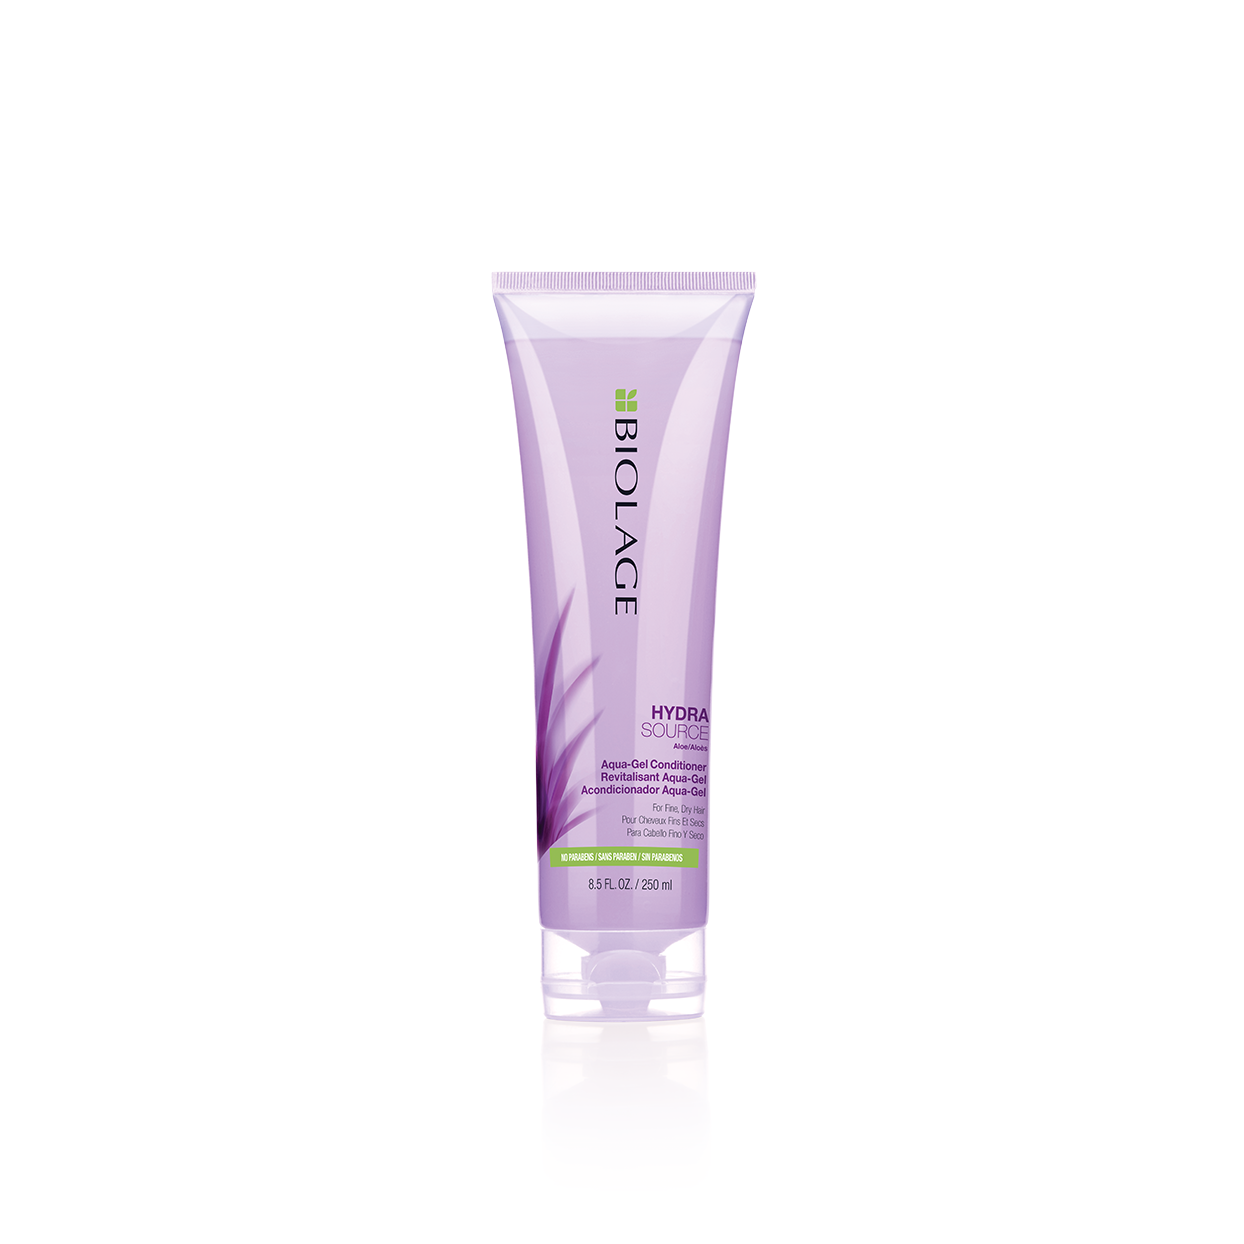 Biolage HydraSource AquaGelee Dry Hair Gel Conditioner for Dry Hair